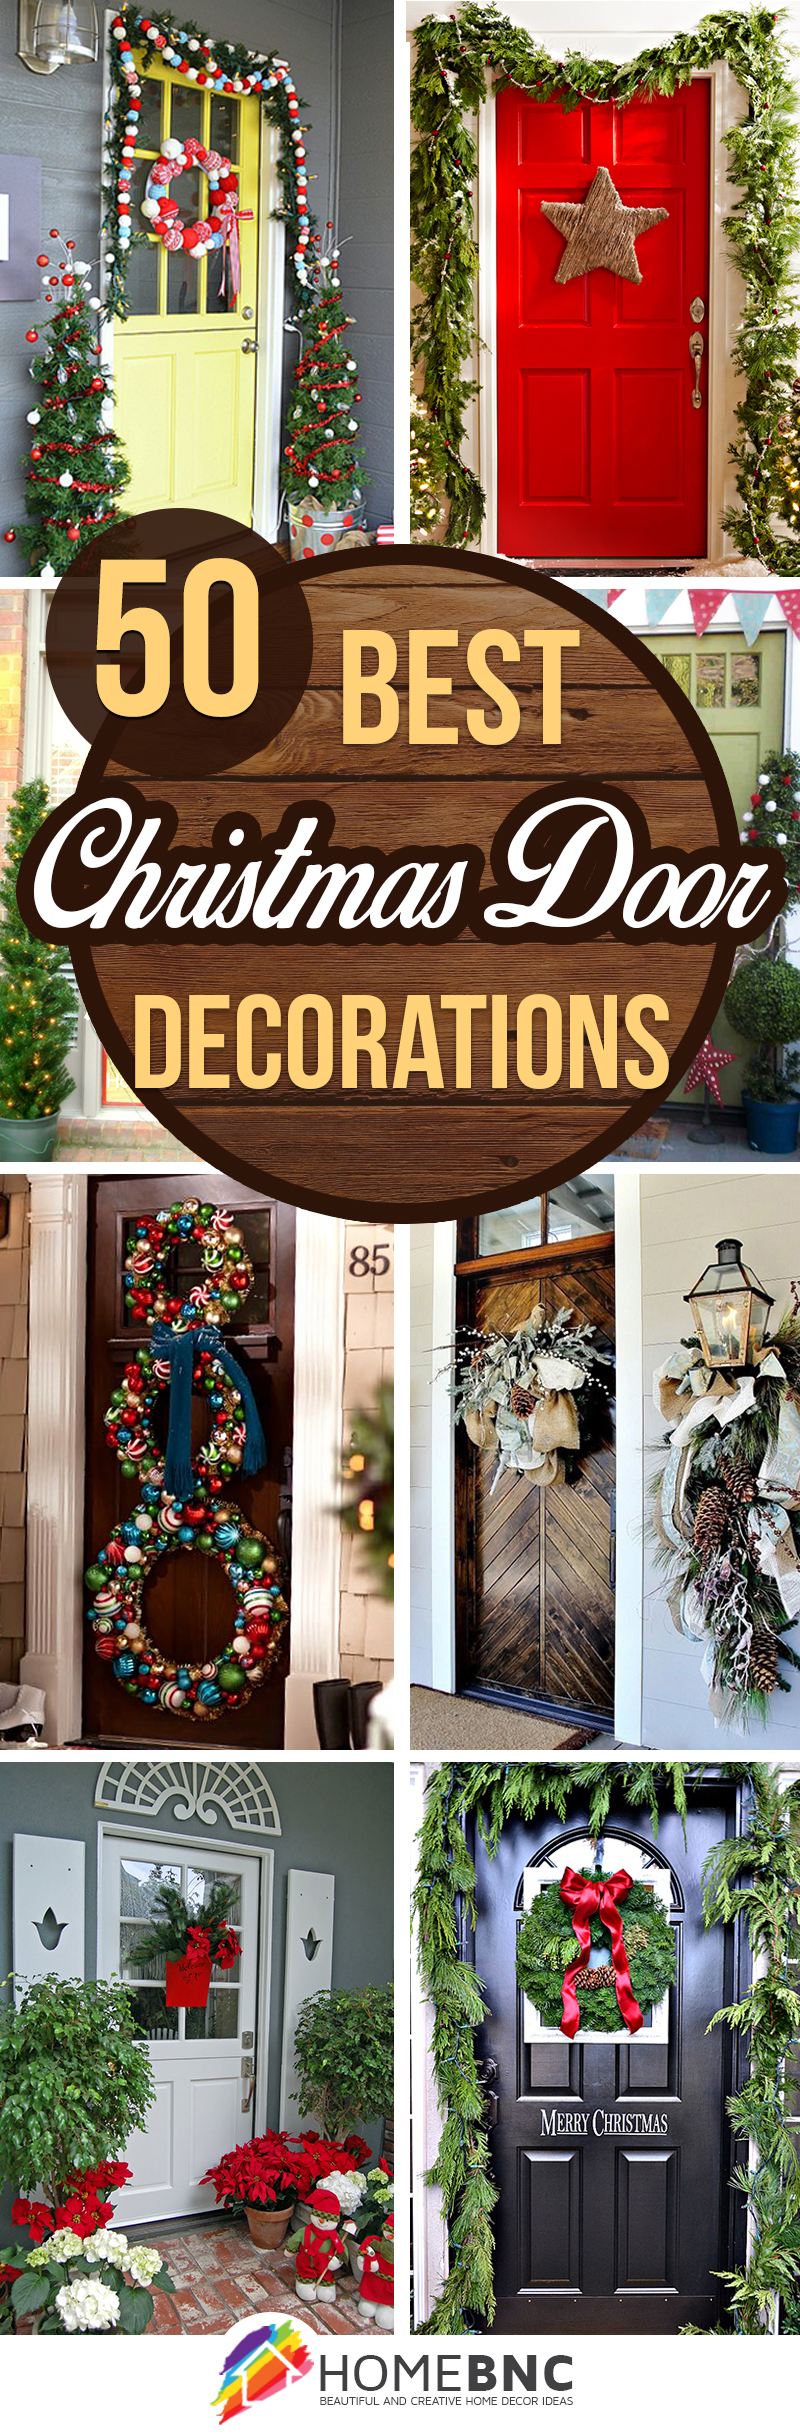 50 best christmas door decorations for 2018 - Beautiful Christmas Door Decorations